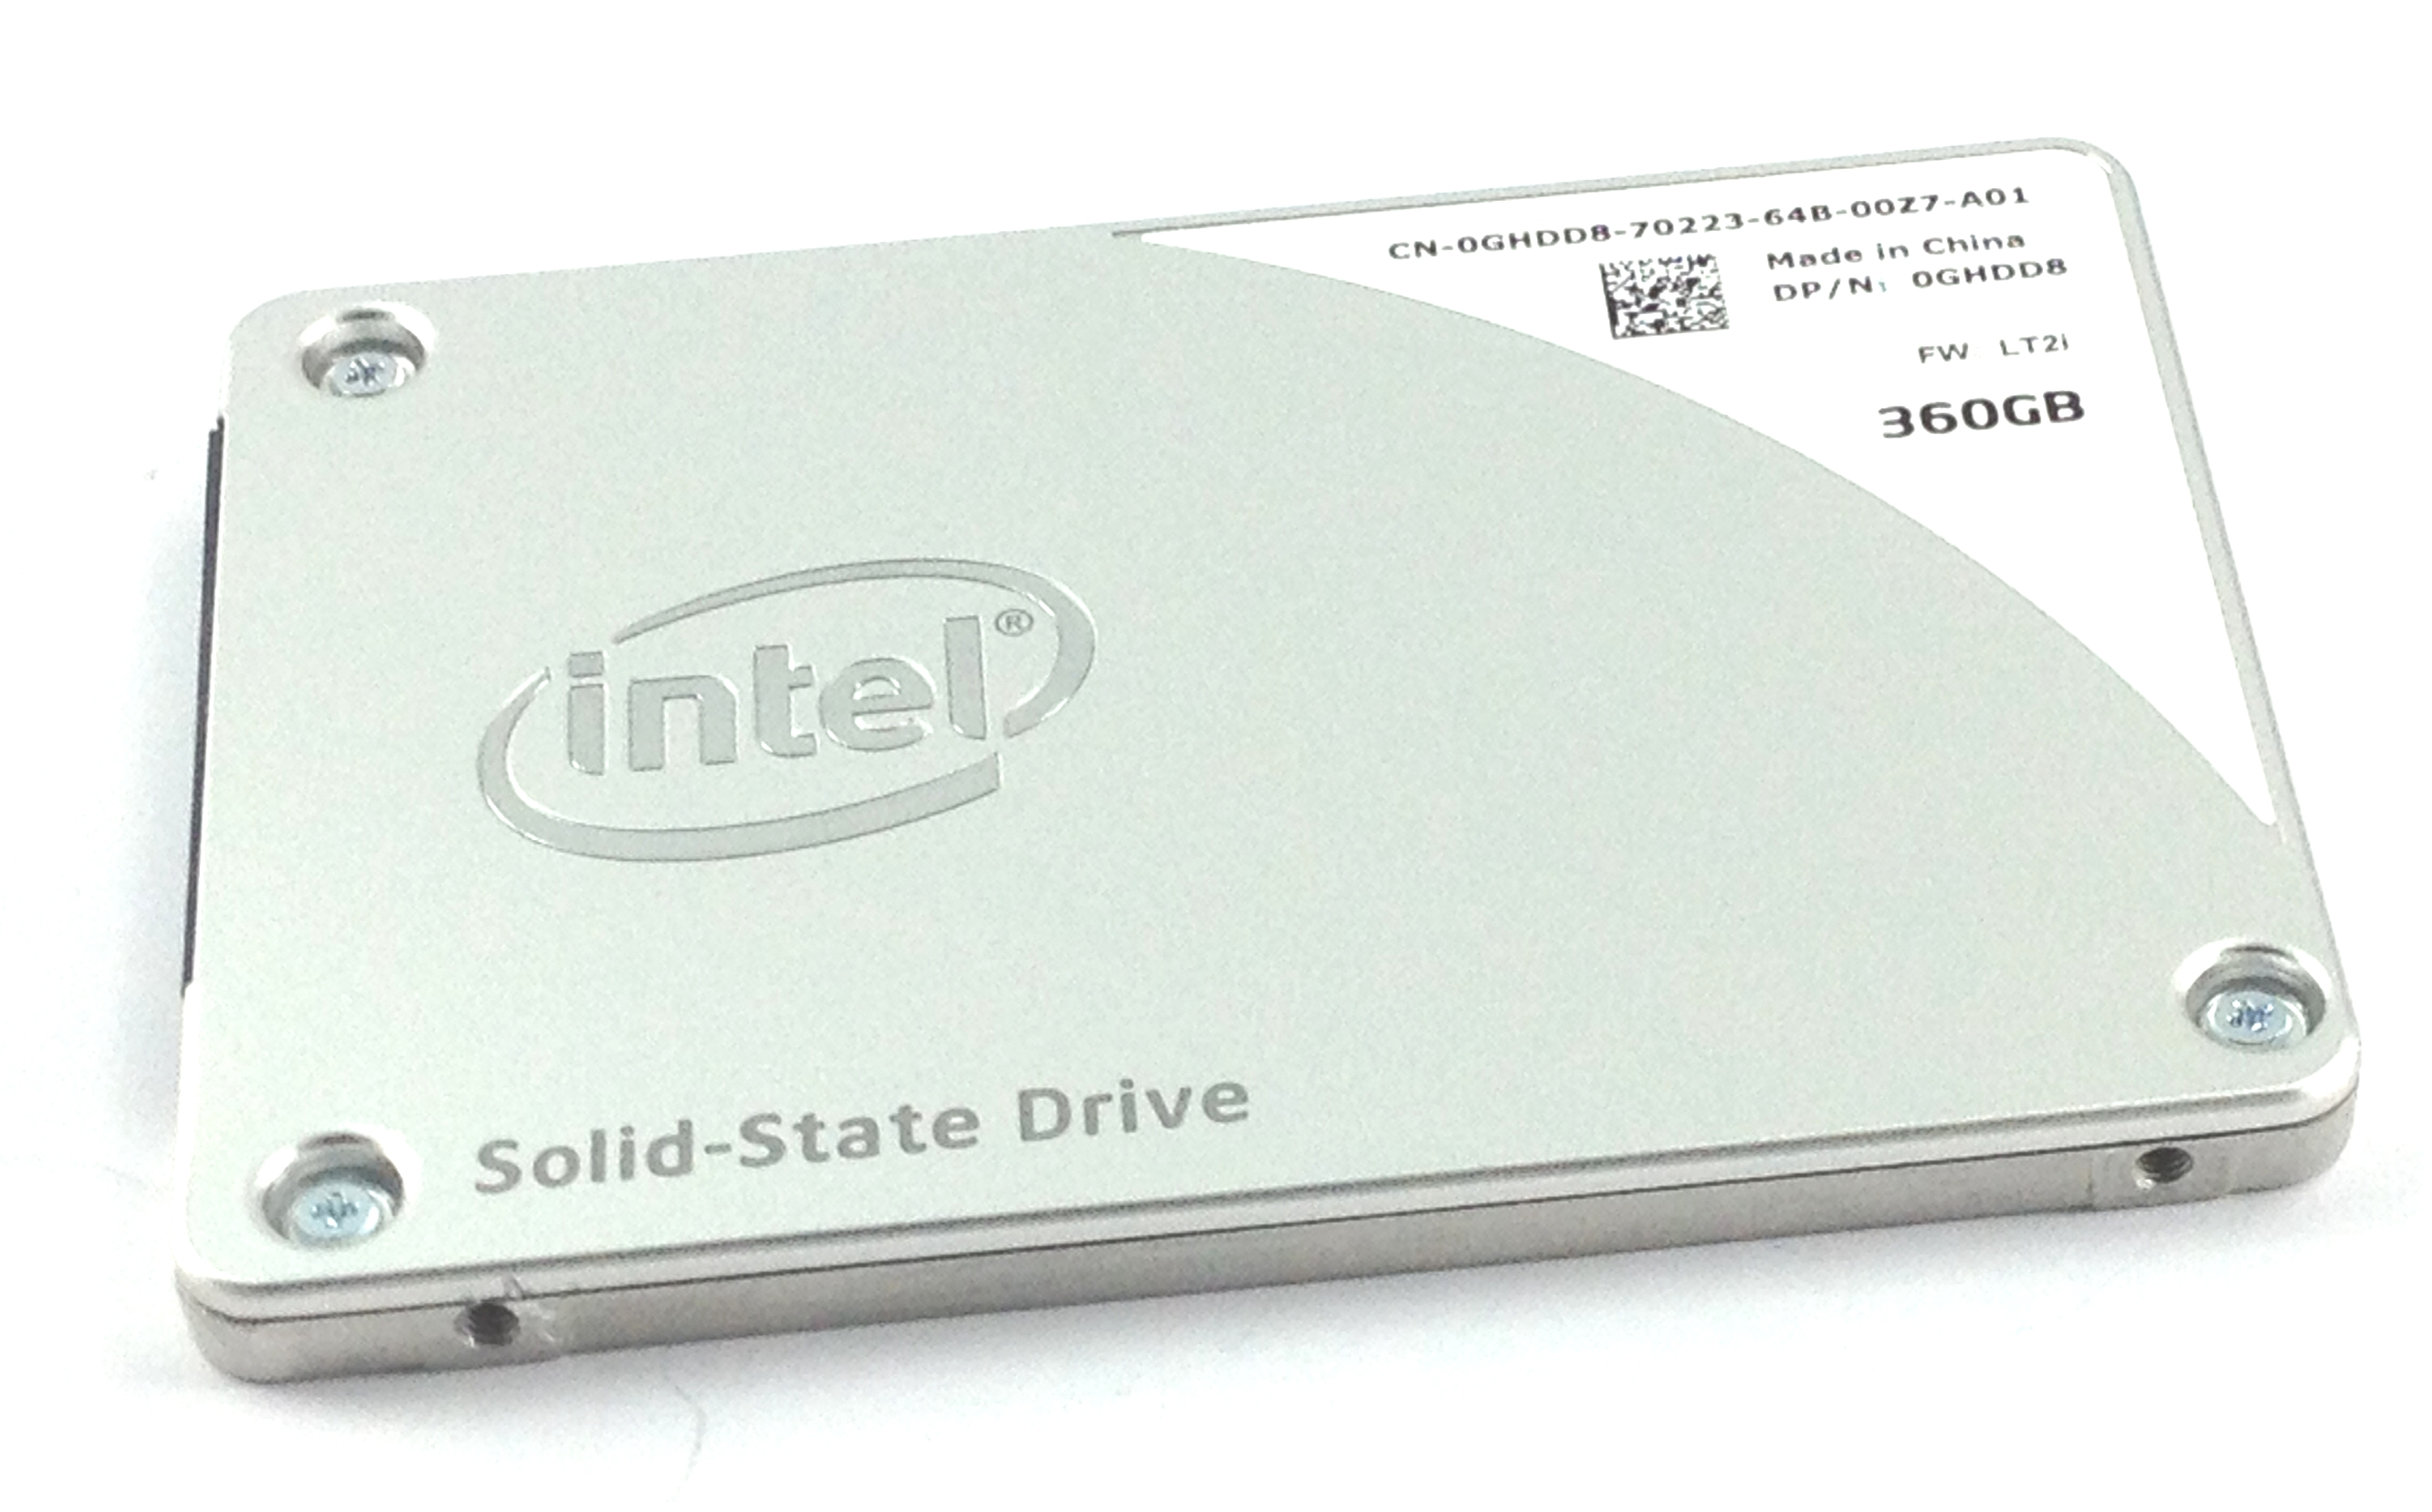 Dell 360Gb 6Gbps Mlc SATA 2.5 Inch SFF Solid State Drive SSD (GHDD8)